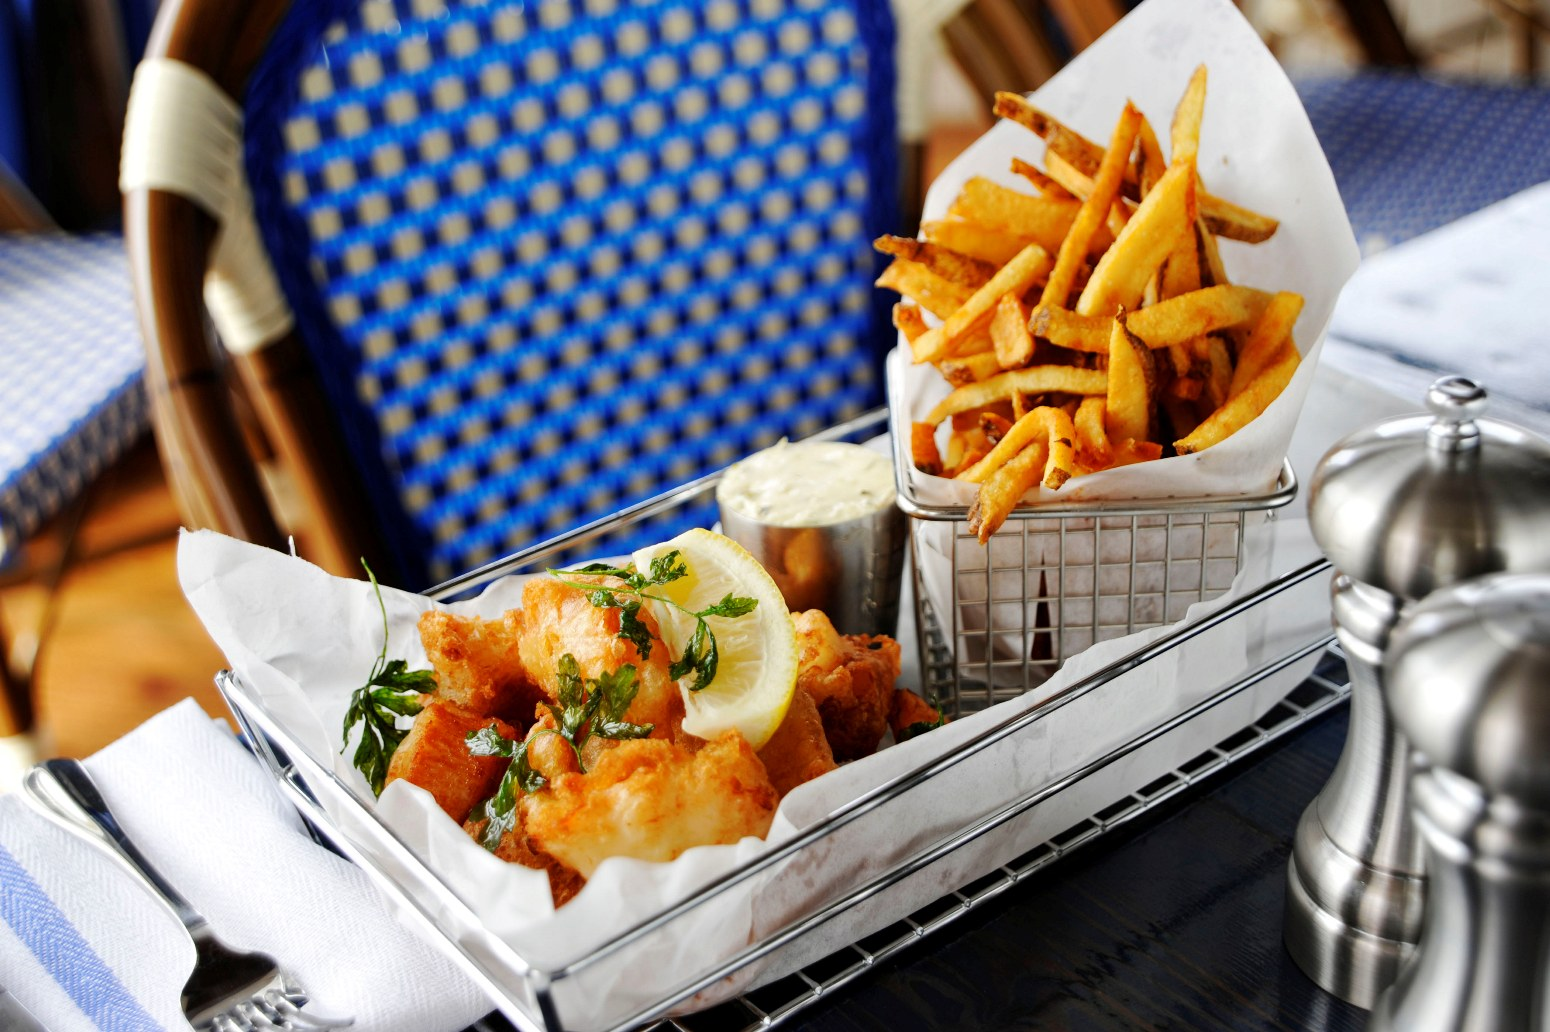 When in doubt (and not vegetarian), go with fish and chips.